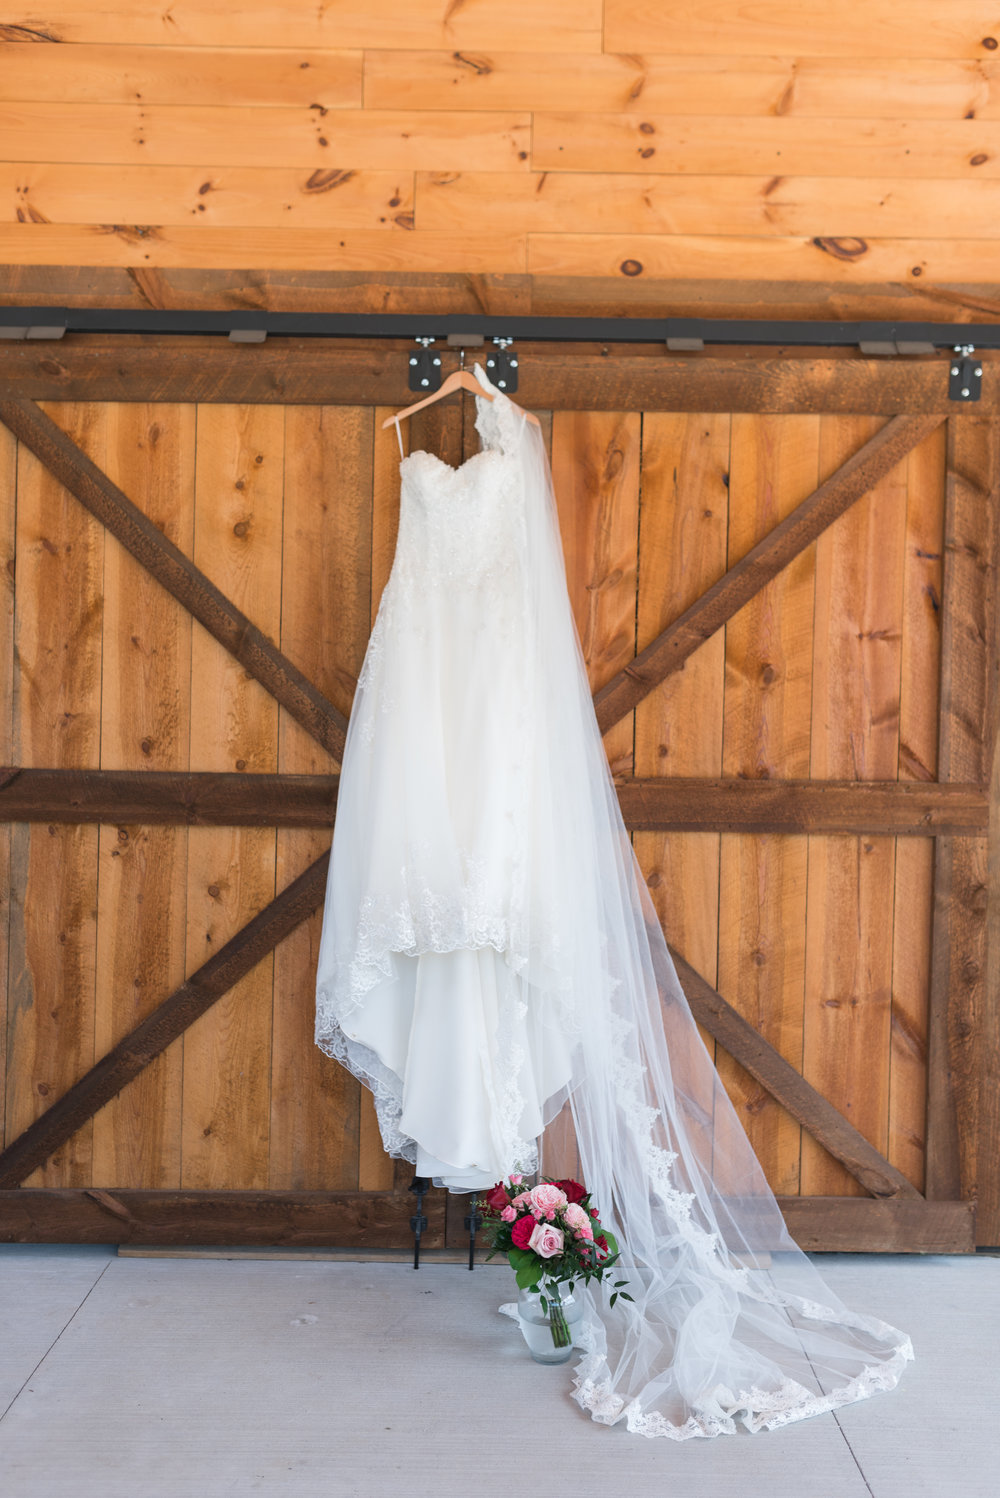 wedding dress, long veil, and wedding flowers in glass vase in front of barn door in Des Moines iowa